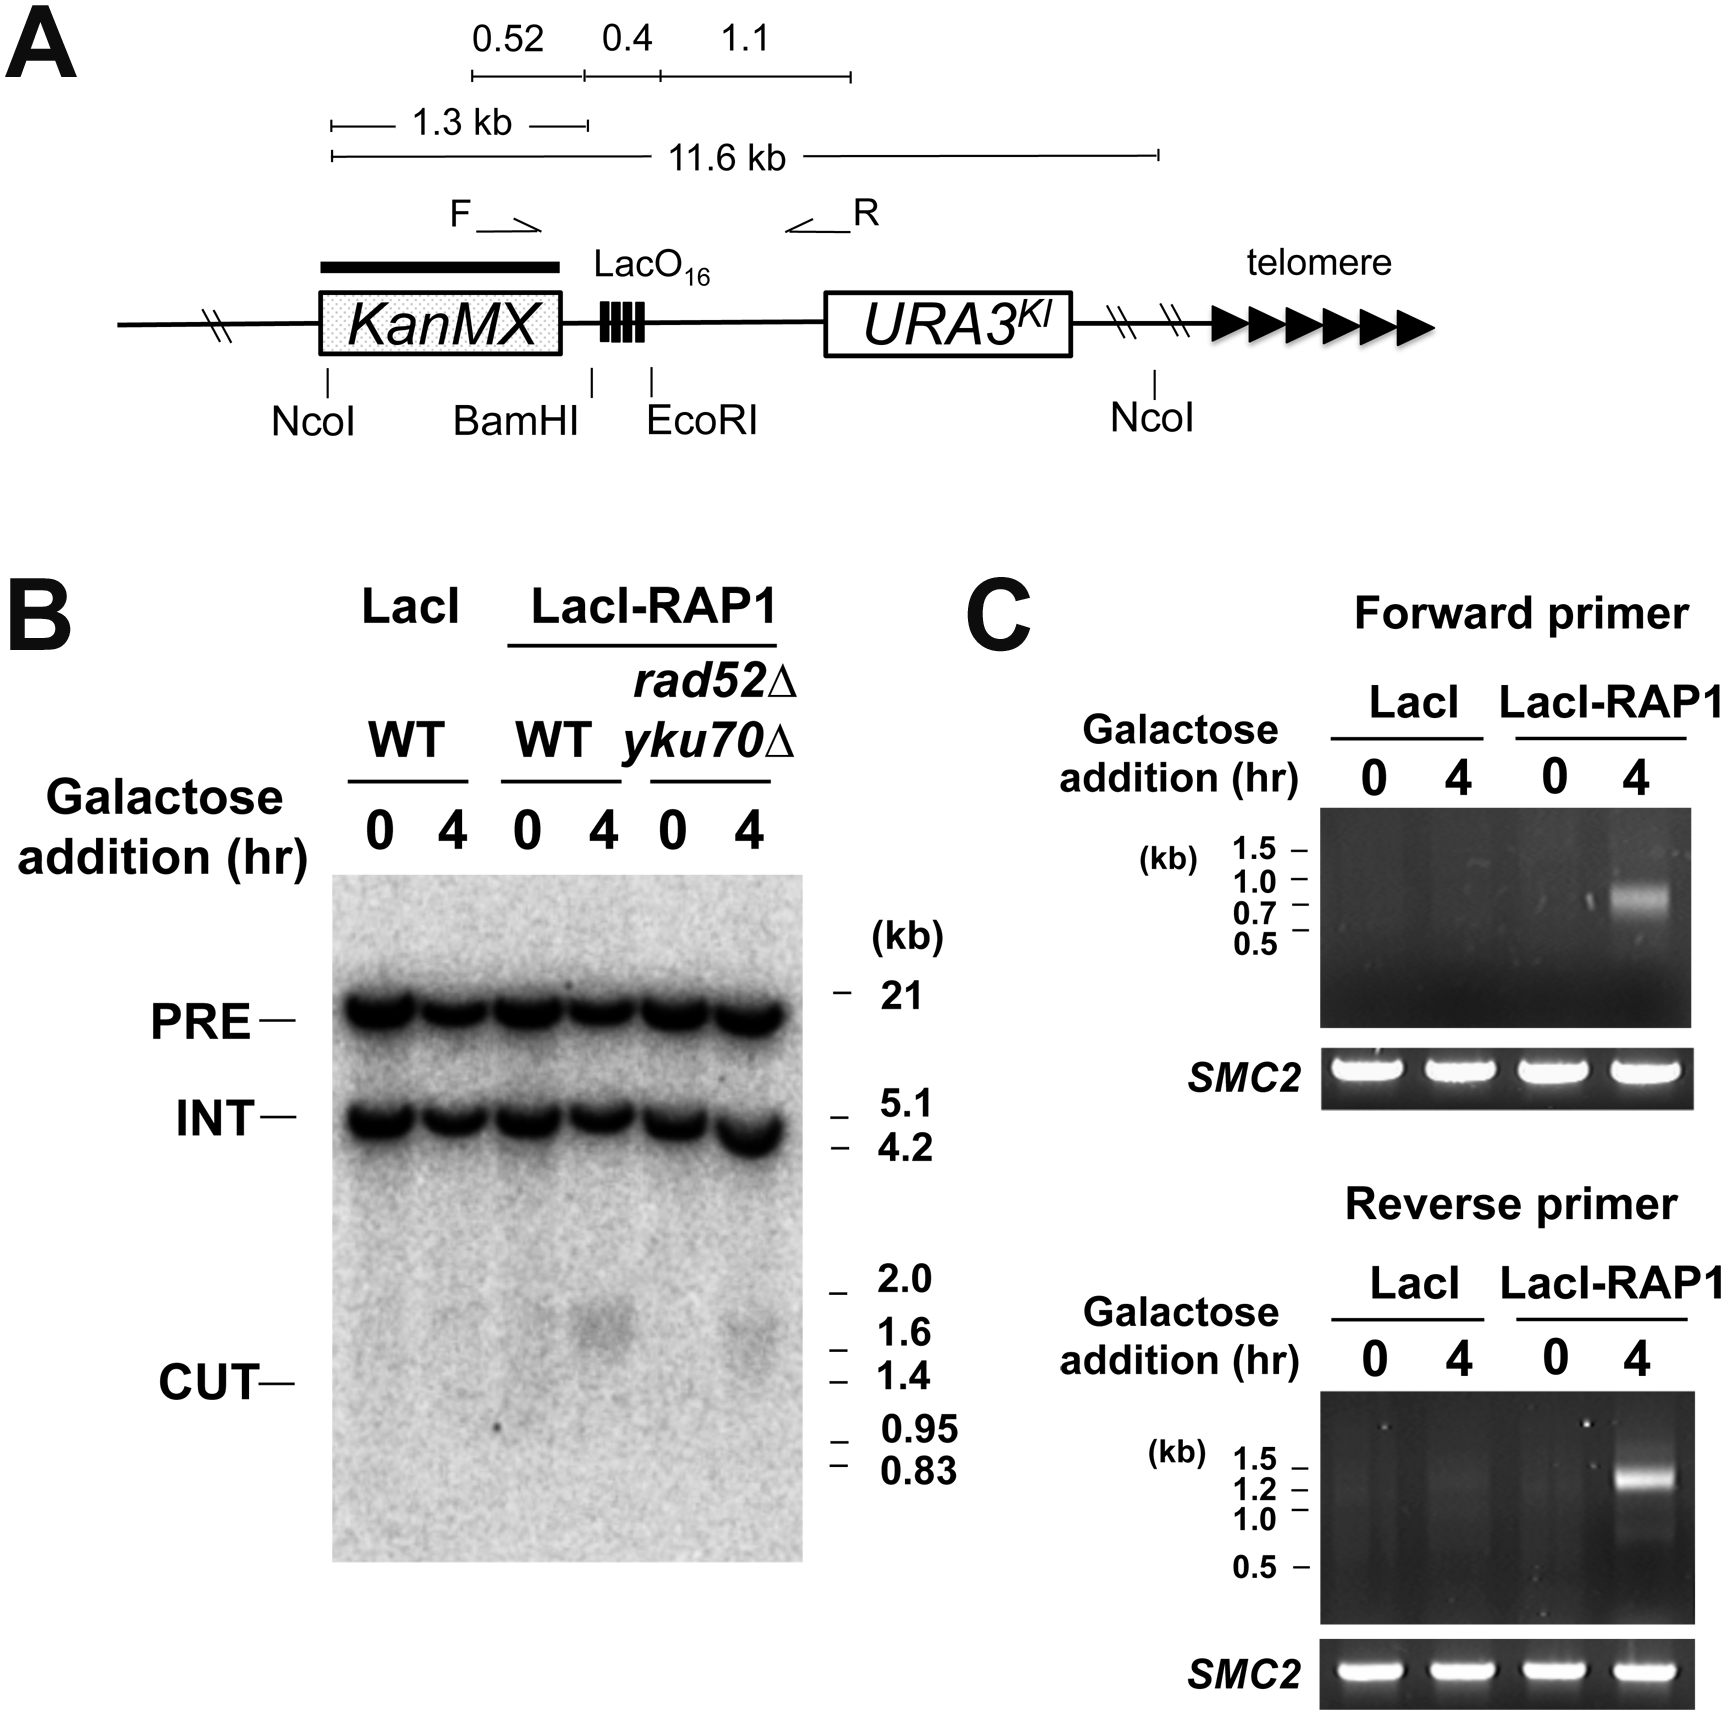 DSB induction at the LacO<sub>16</sub> repeat after LacI-Rap1 expression.